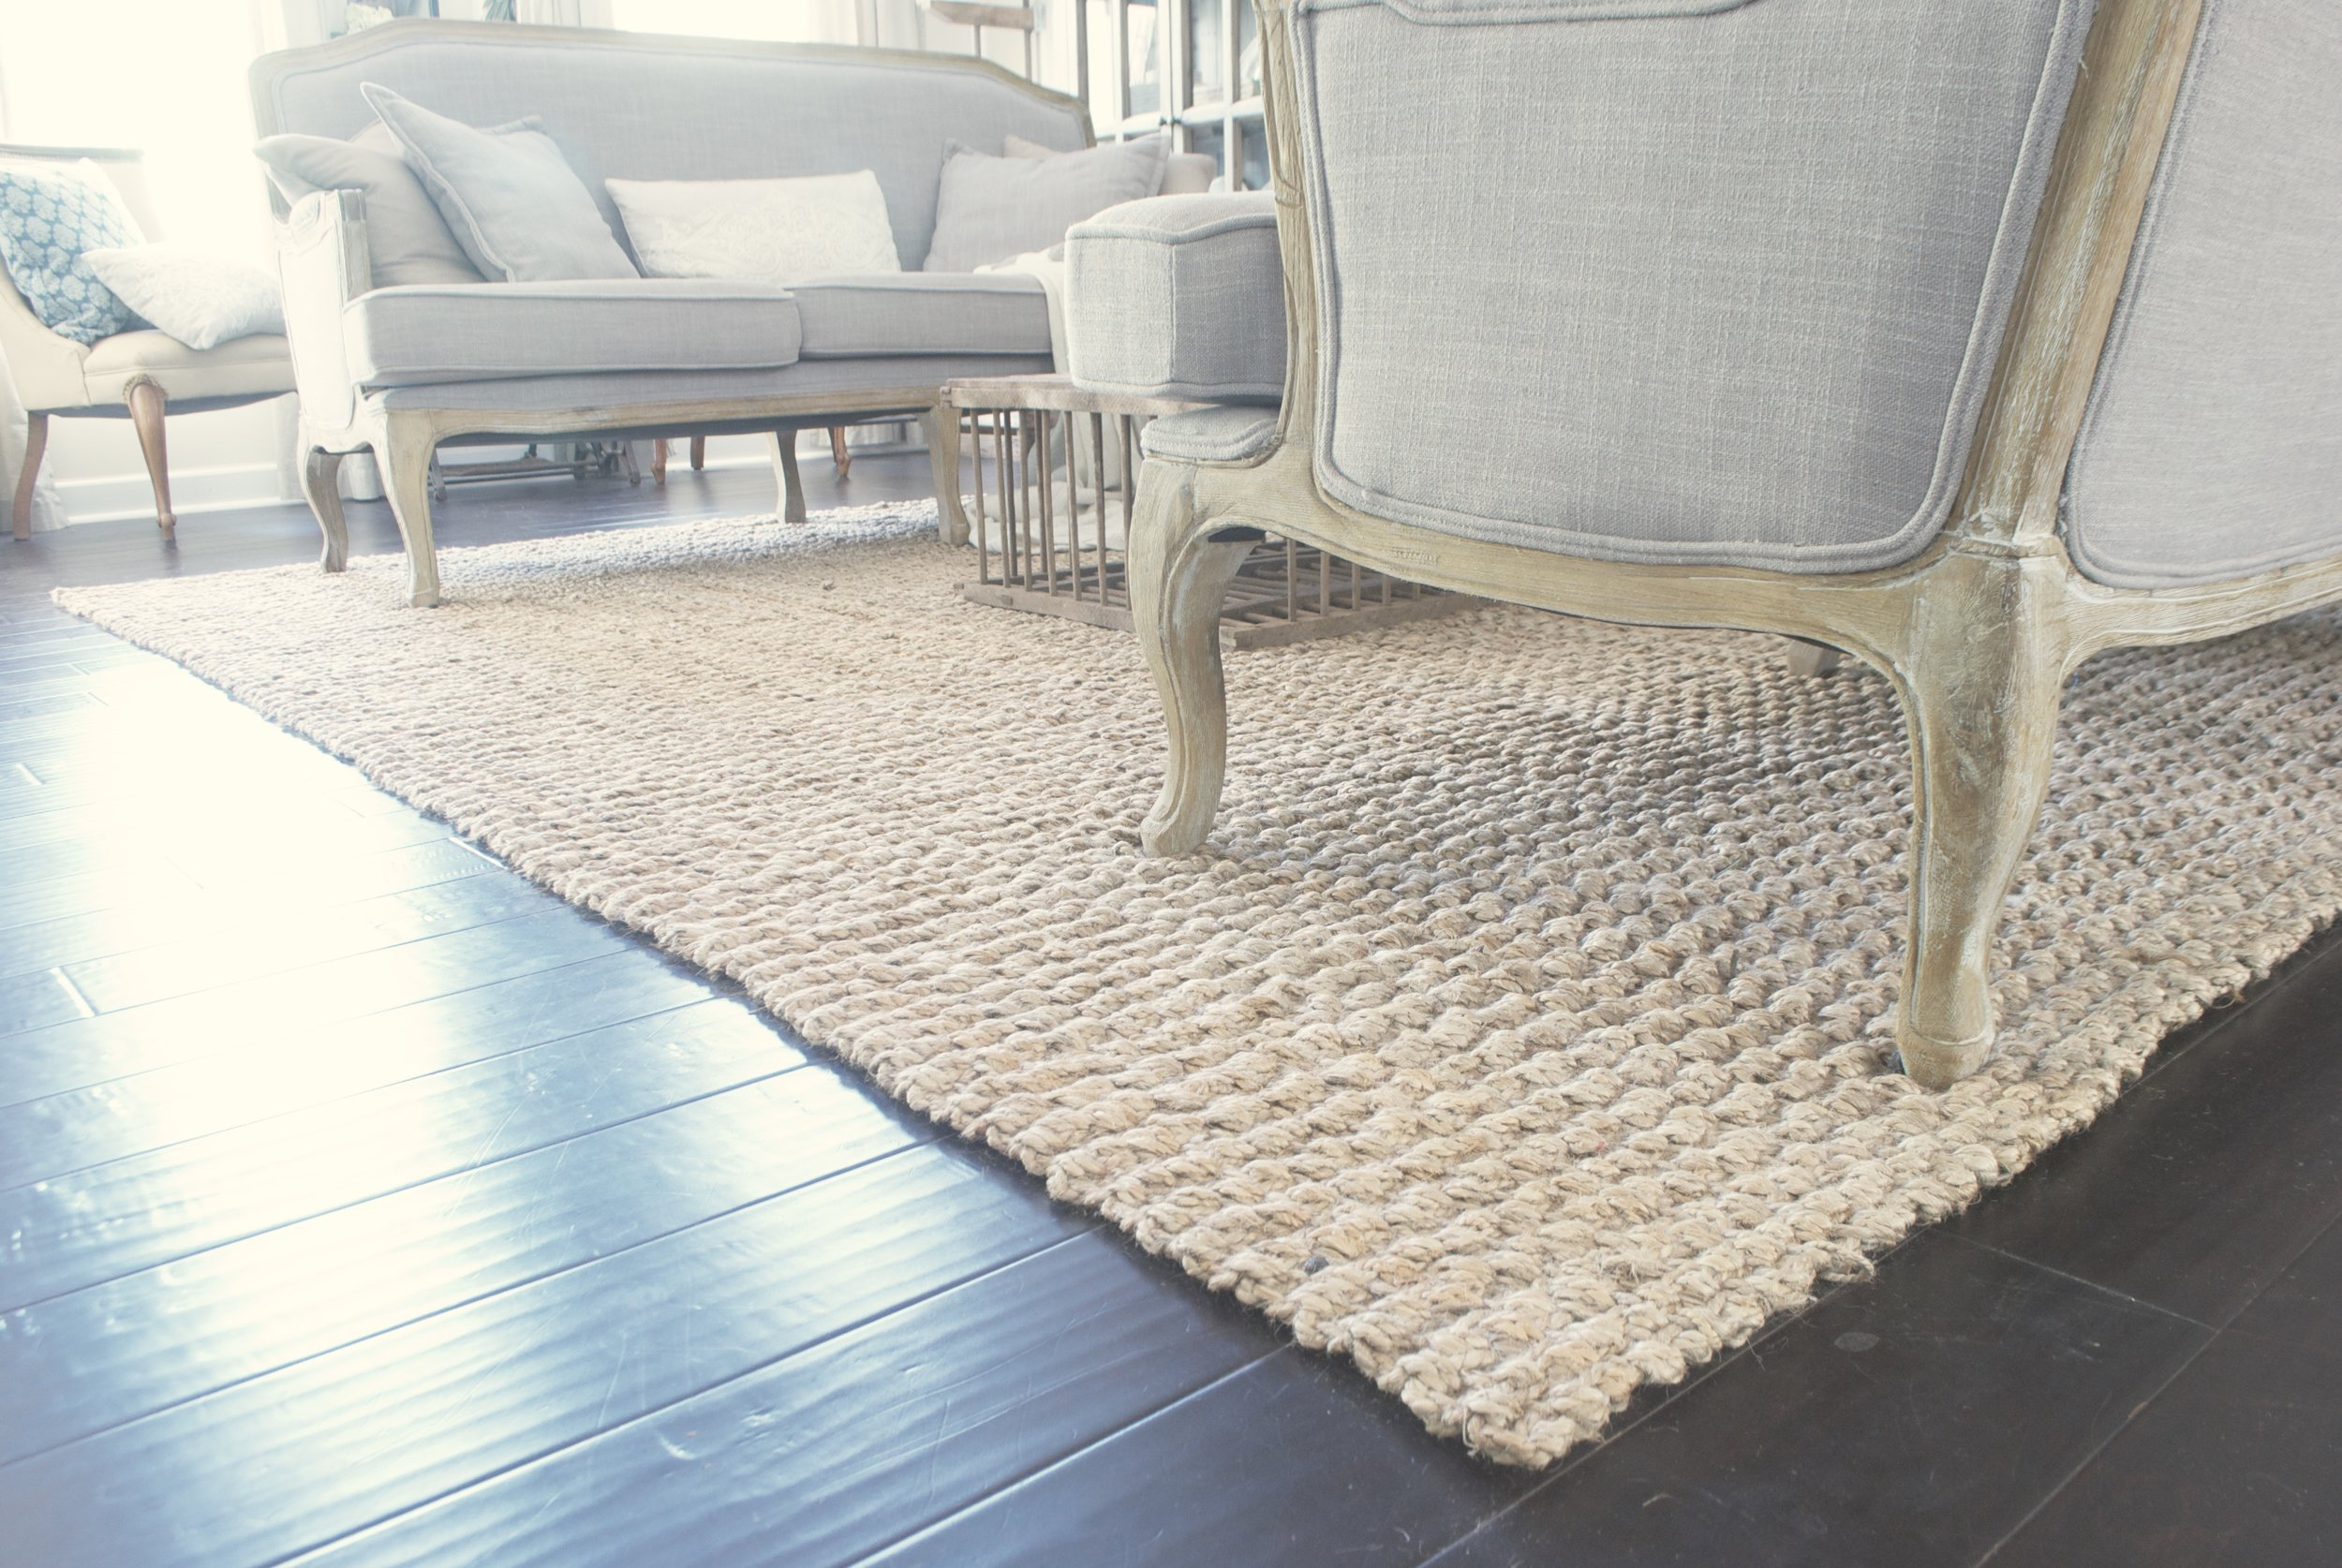 Jute Rug Review- Color, Texture, Durability, Cost